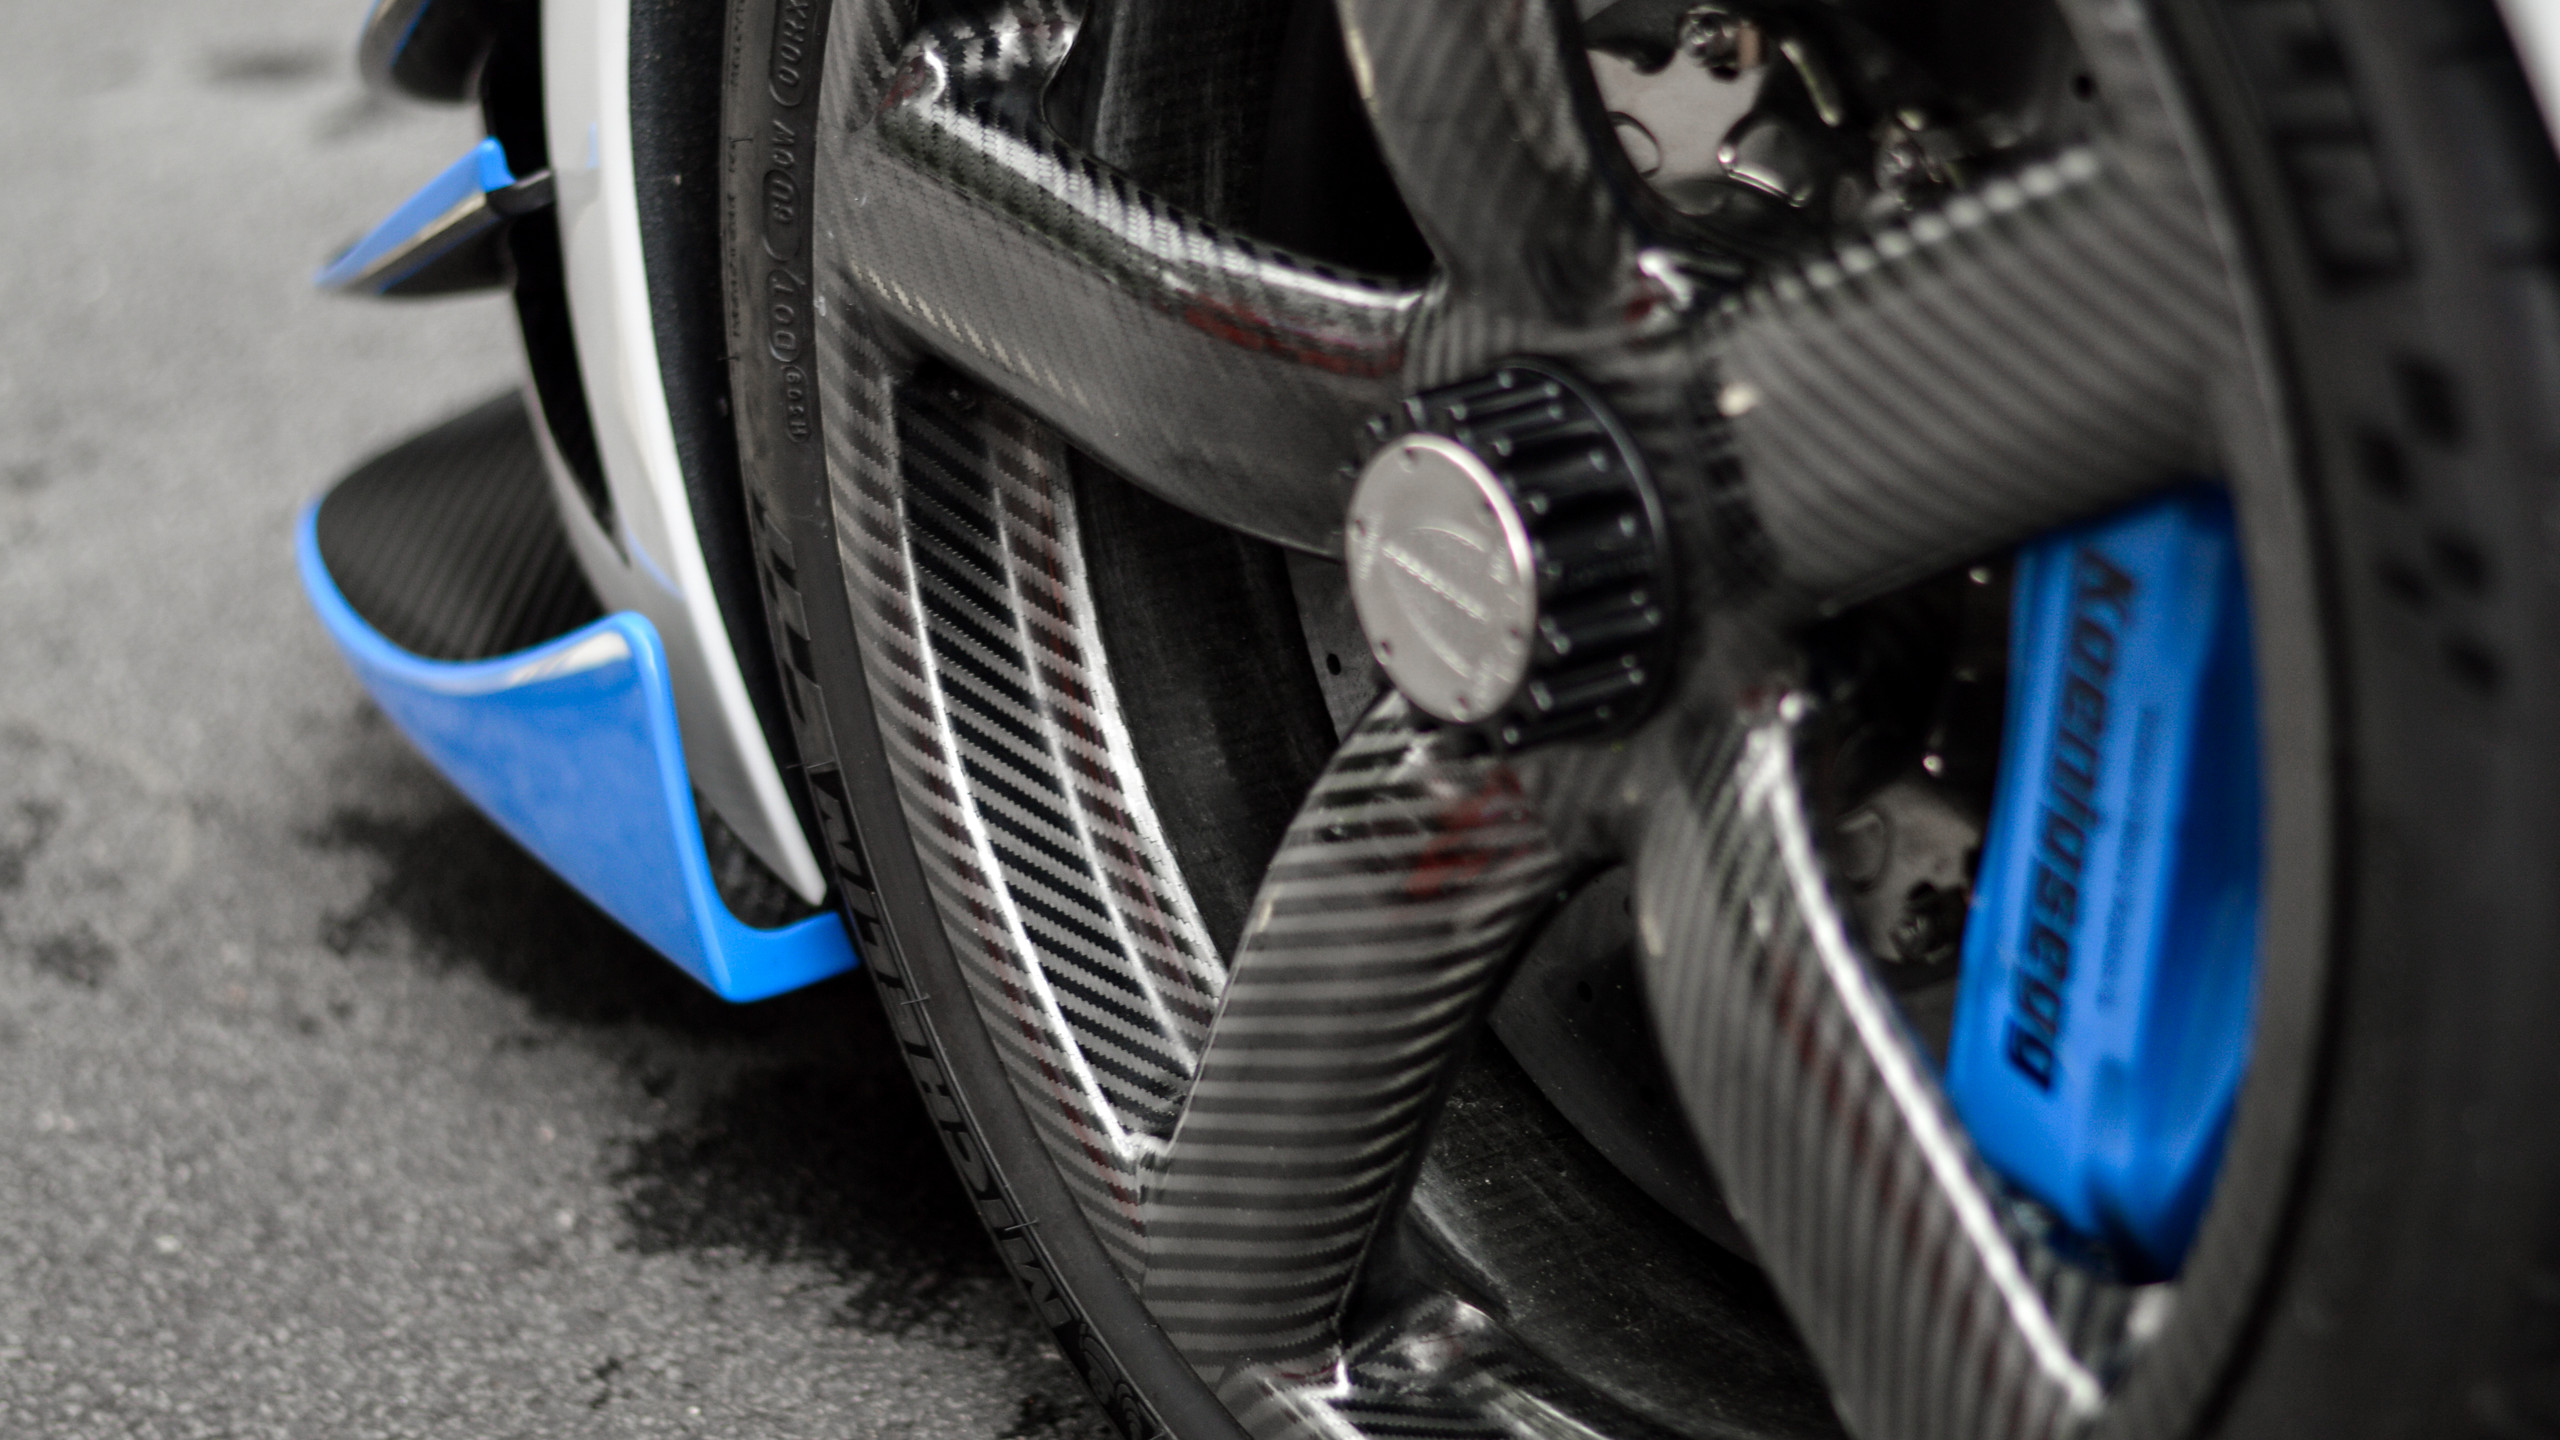 The work that goes into each of these carbon fibre wheels is immense- and they look stunning!